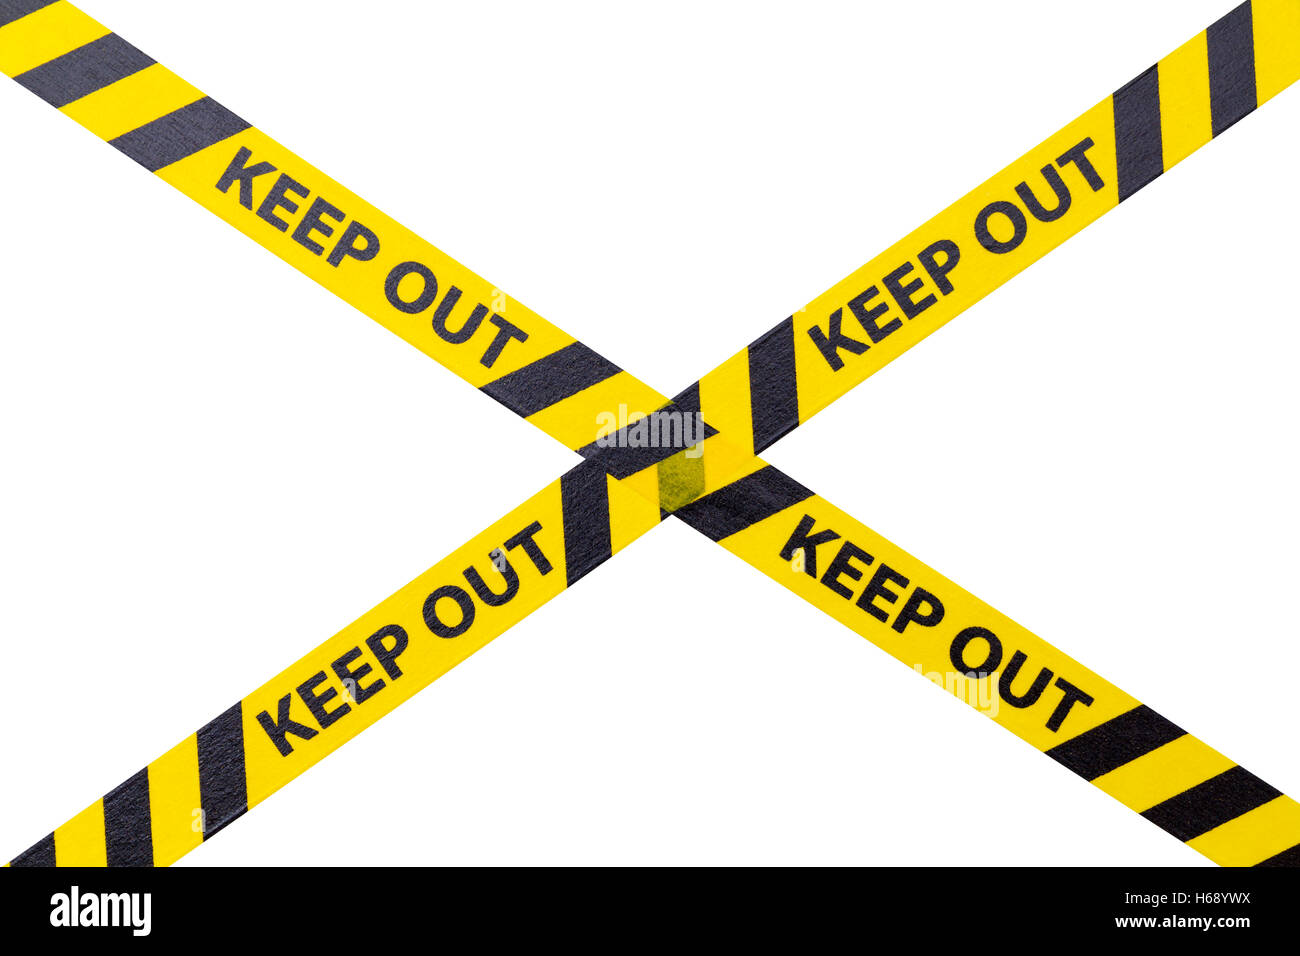 Yellow Keep Out Cordon Tape Isolated on White Background. - Stock Image